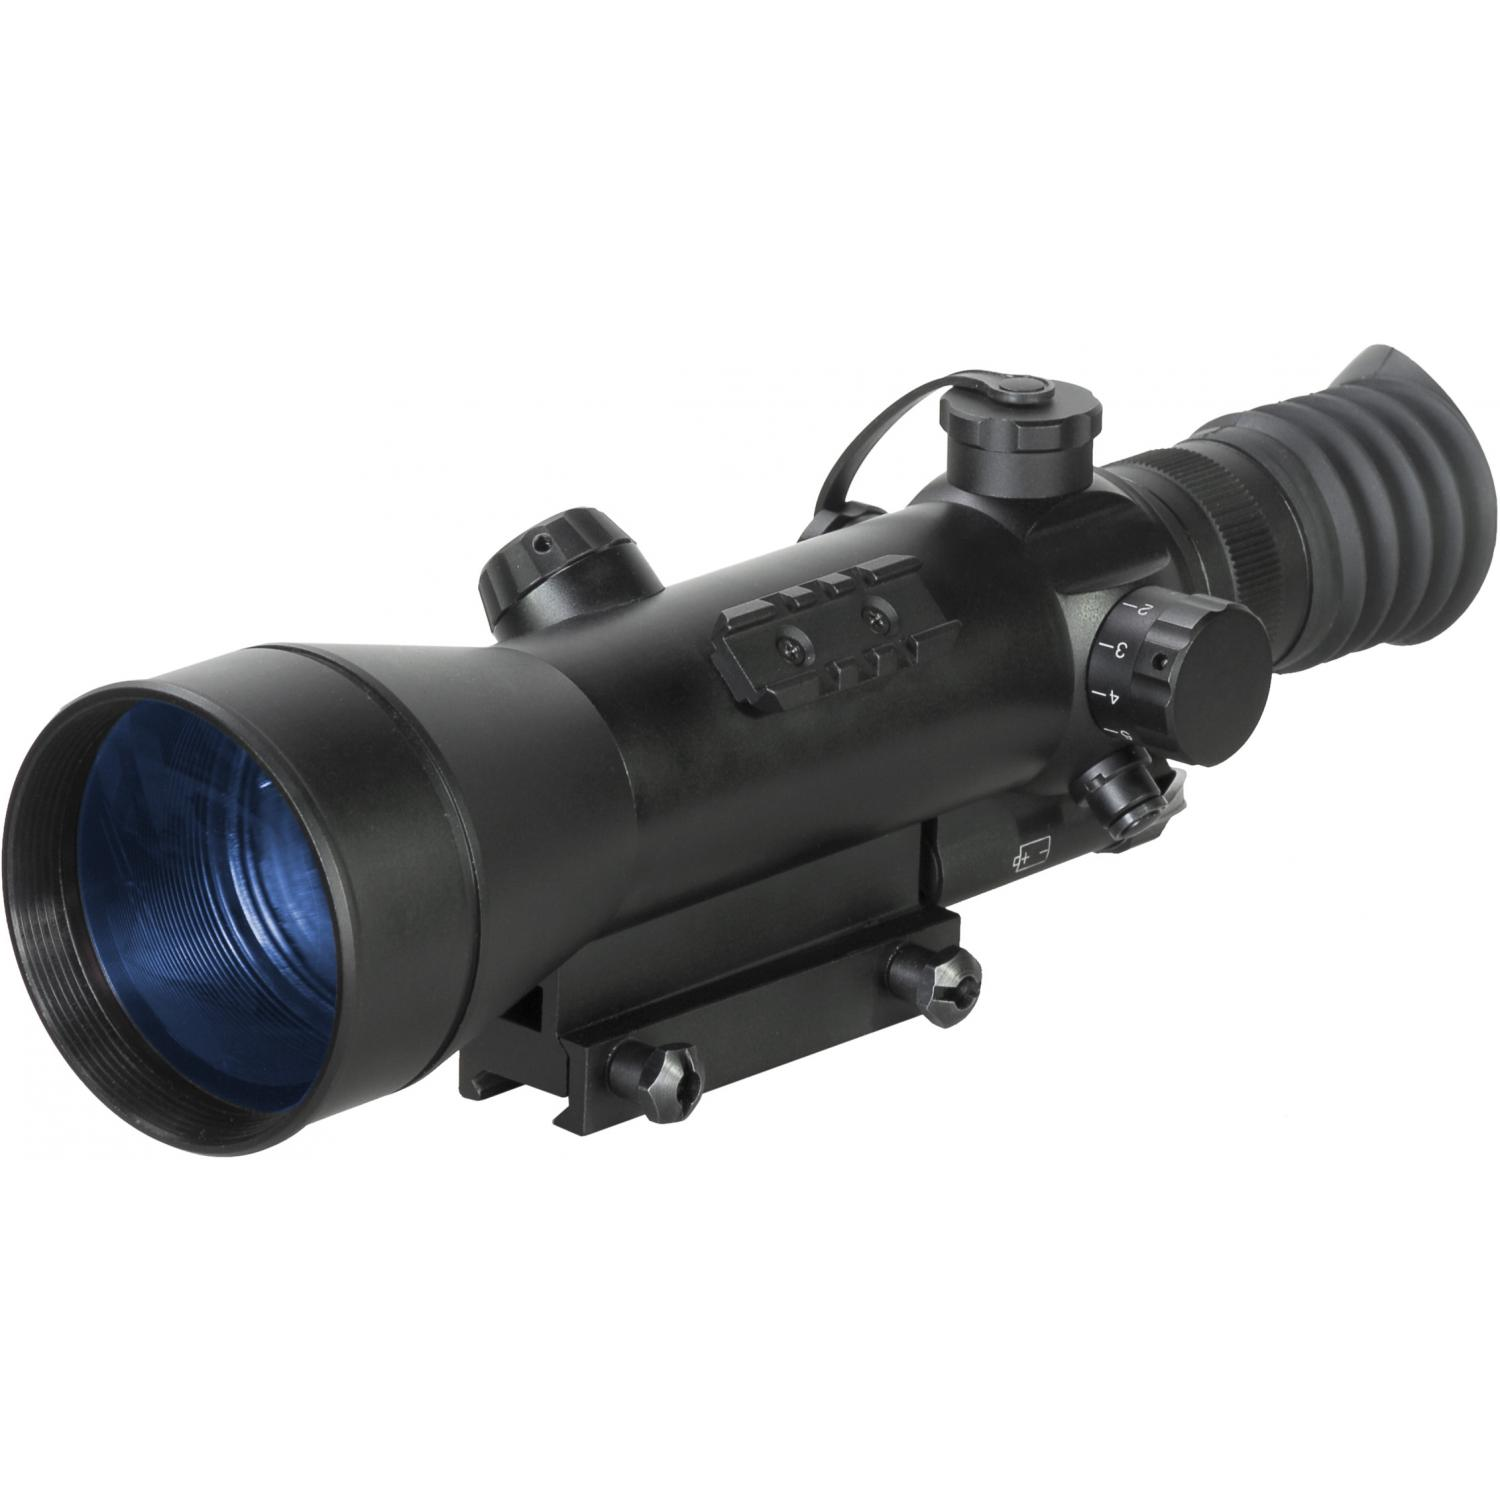 Atn Night Arrow4 Night Vision Weapon Sight With Gen Cgt 4x Magnification - Nvwsnar4c0